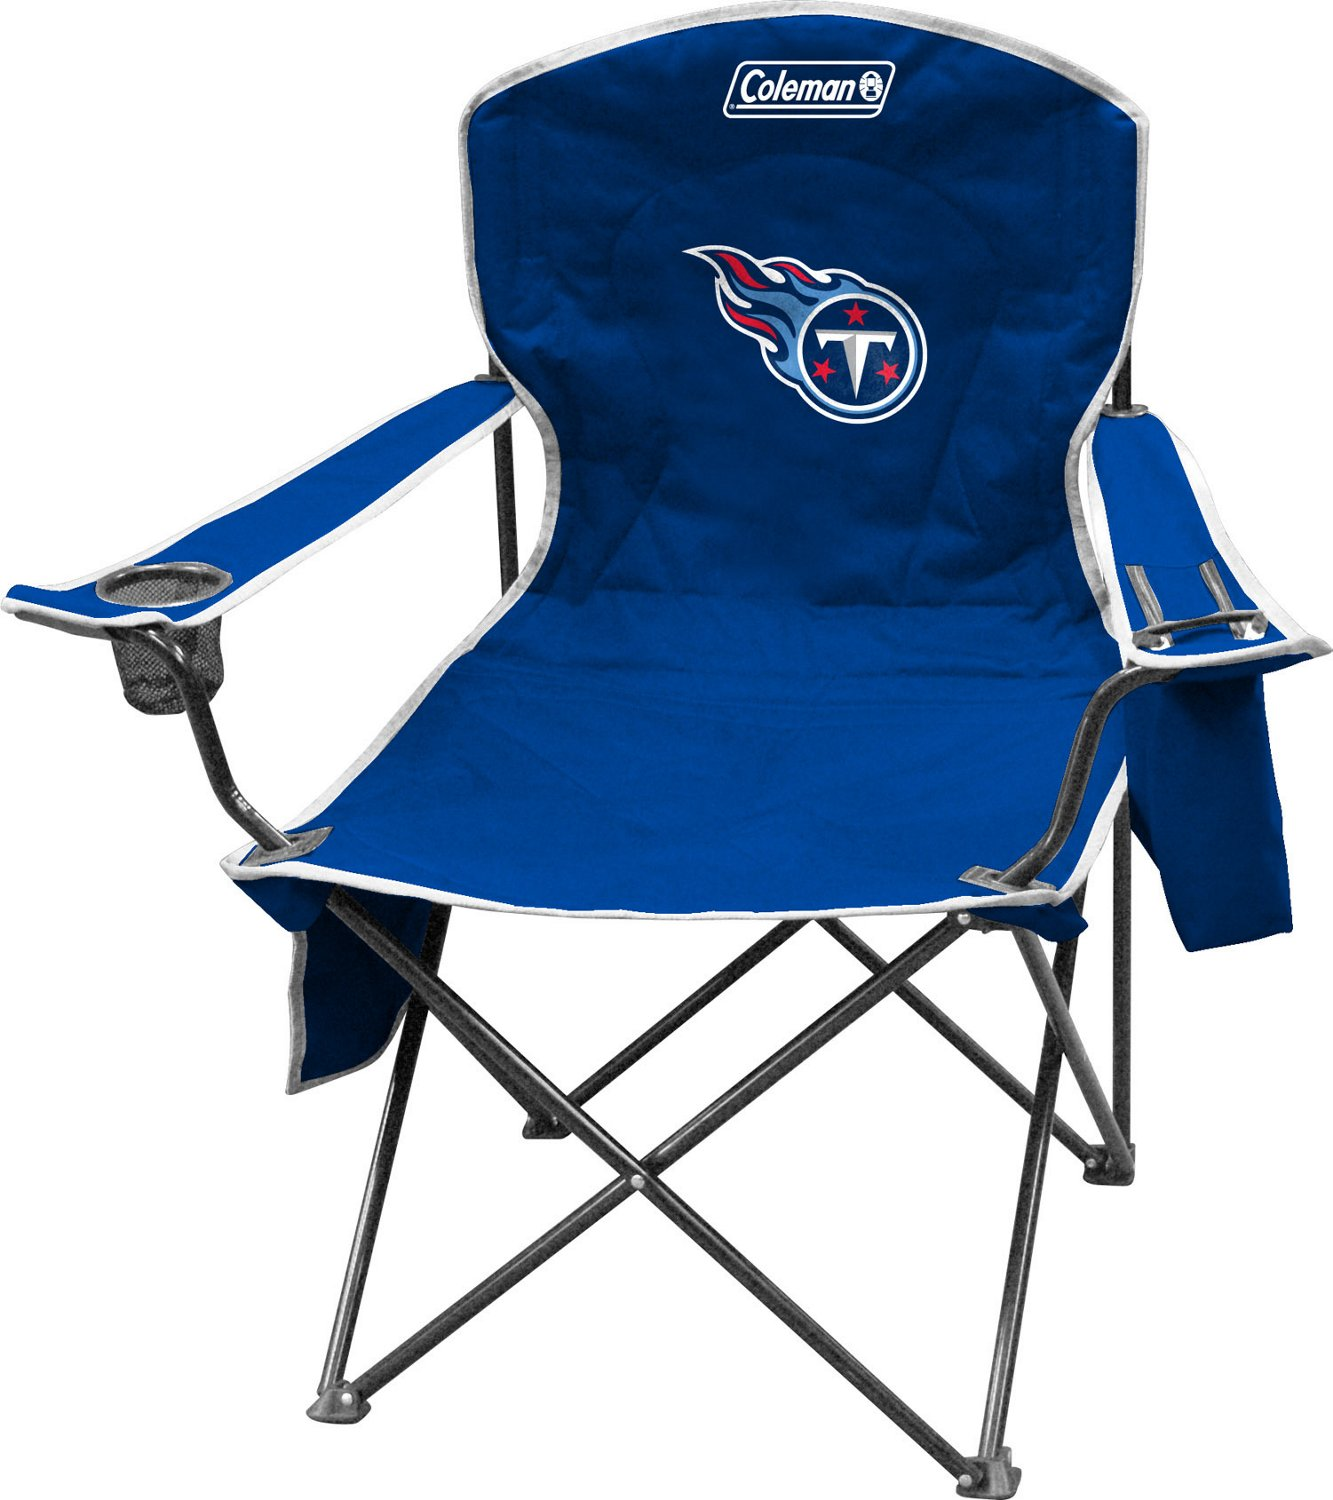 coleman folding chairs modena modern white leather accent chair team academy tennessee titans cooler quad xl